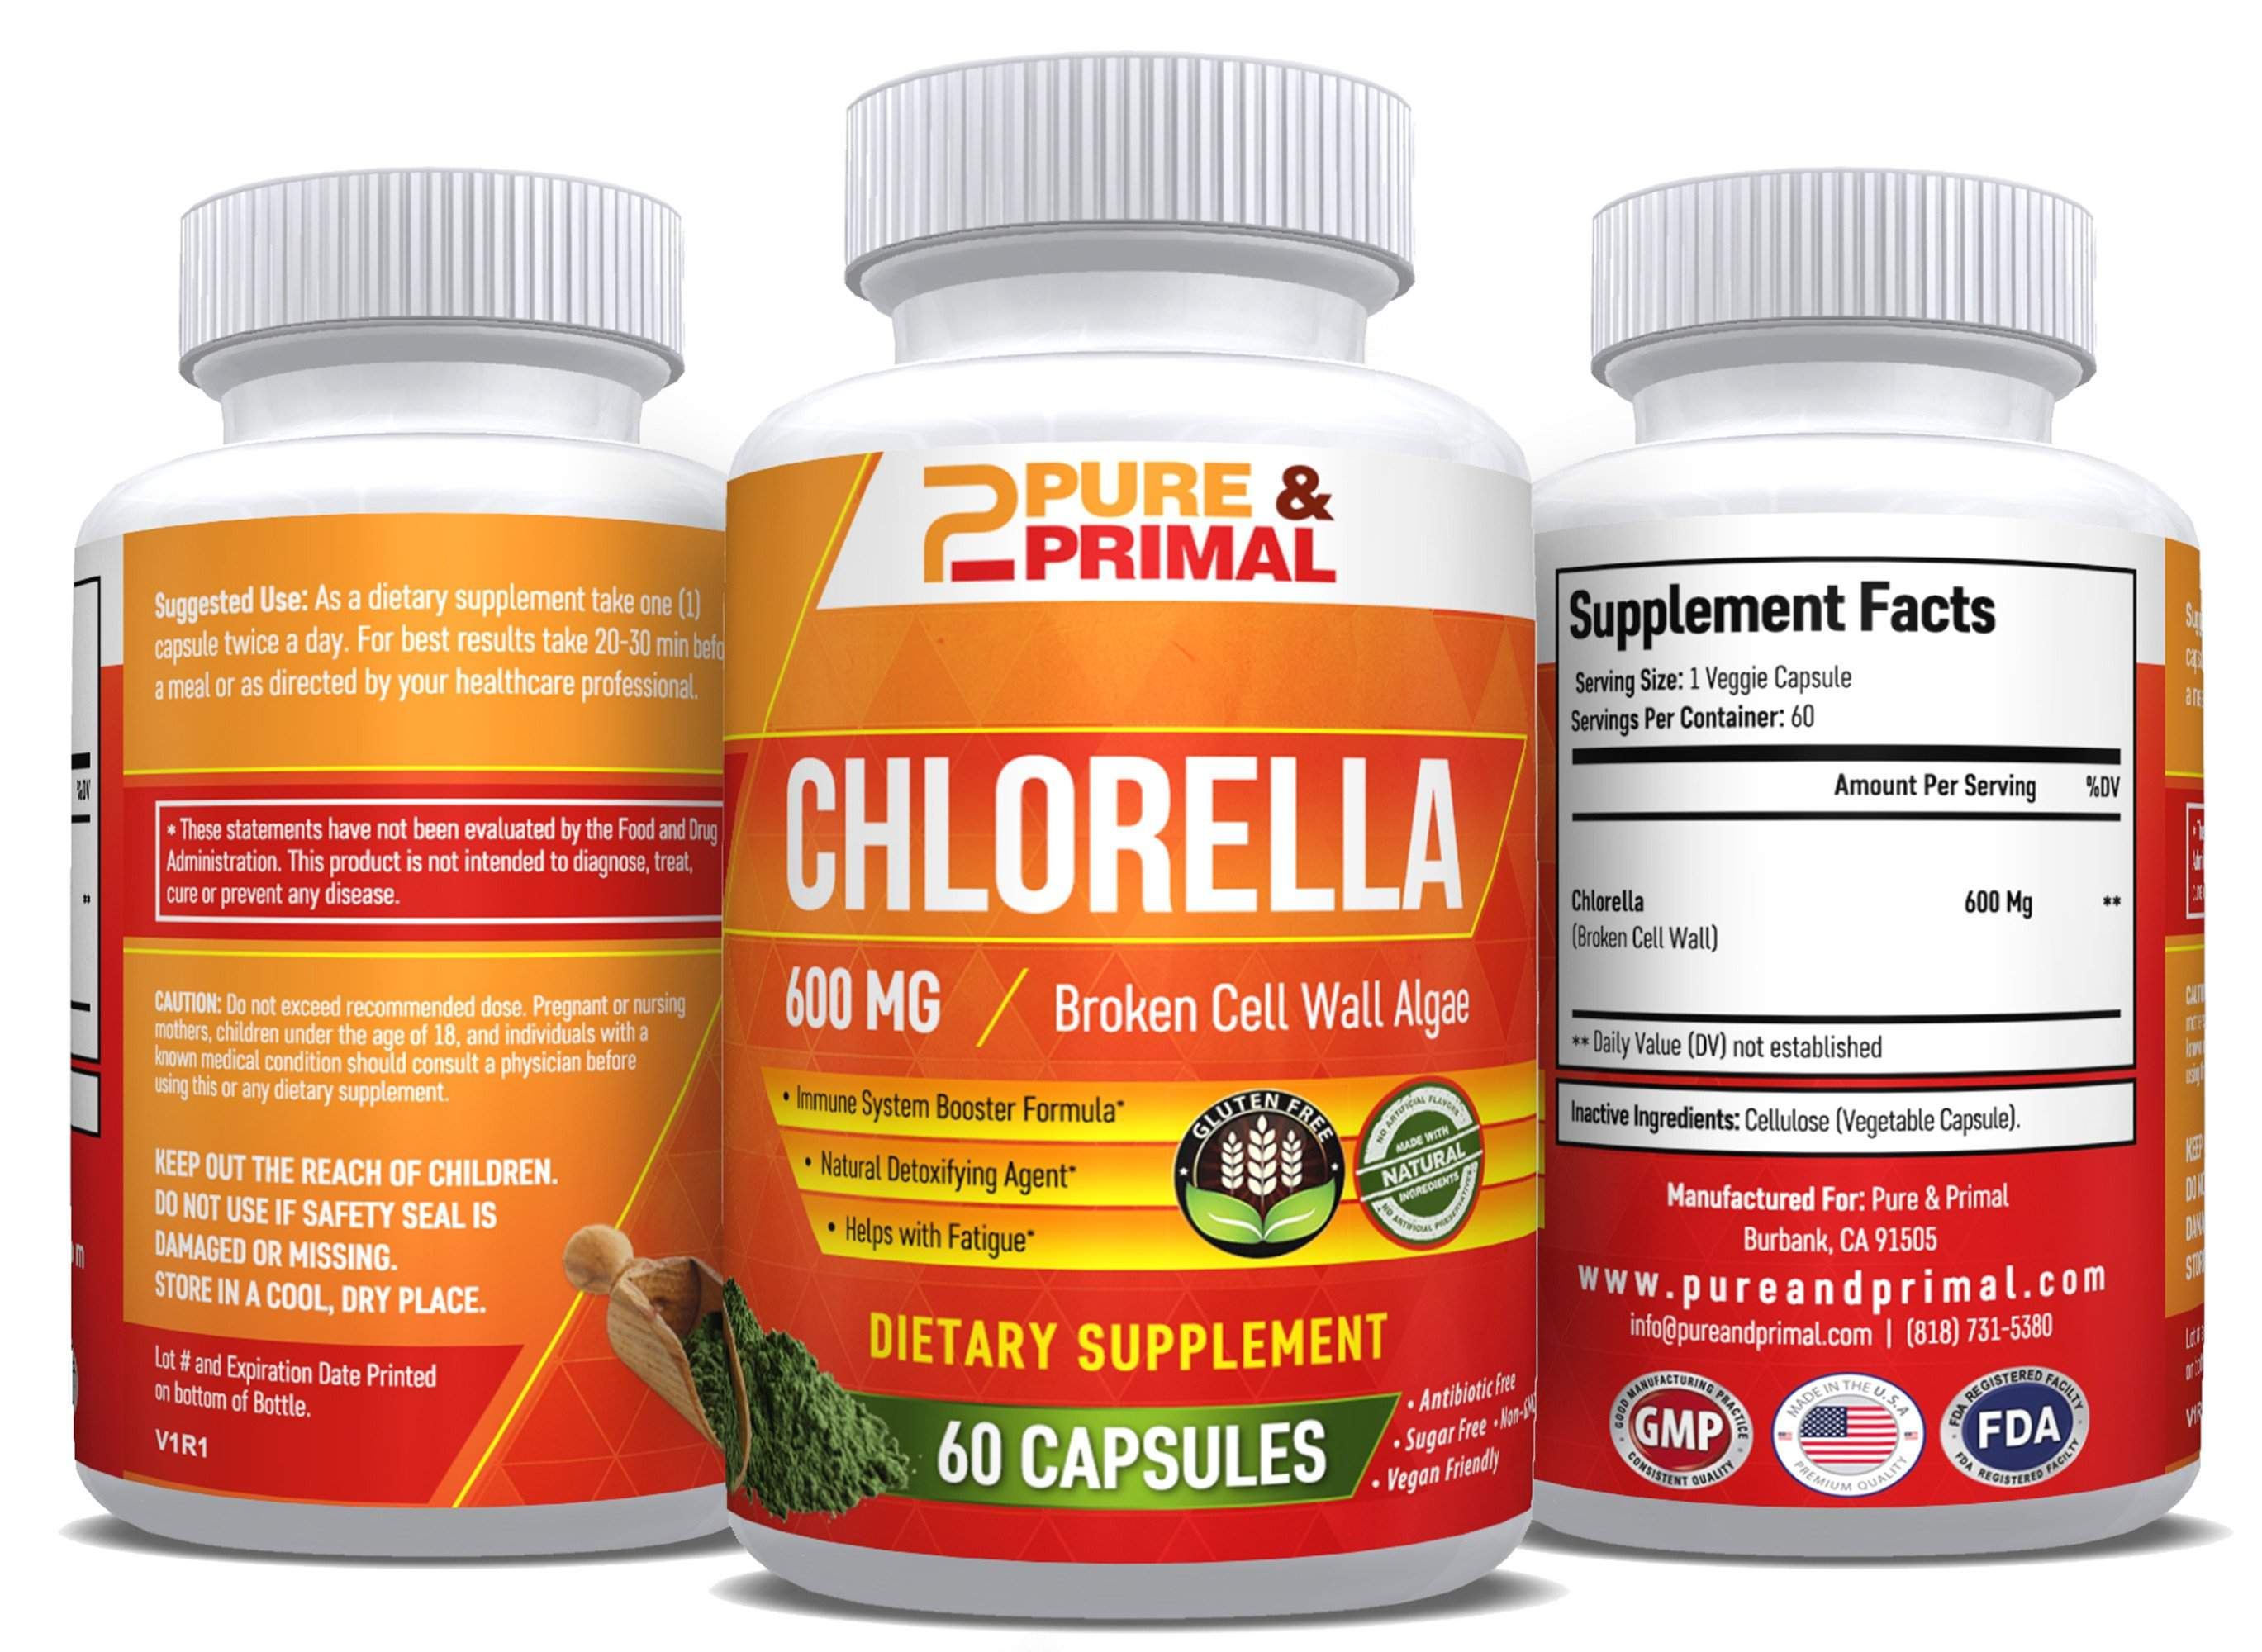 (2 Bottles) - Chlorella Pure - Immune System Booster